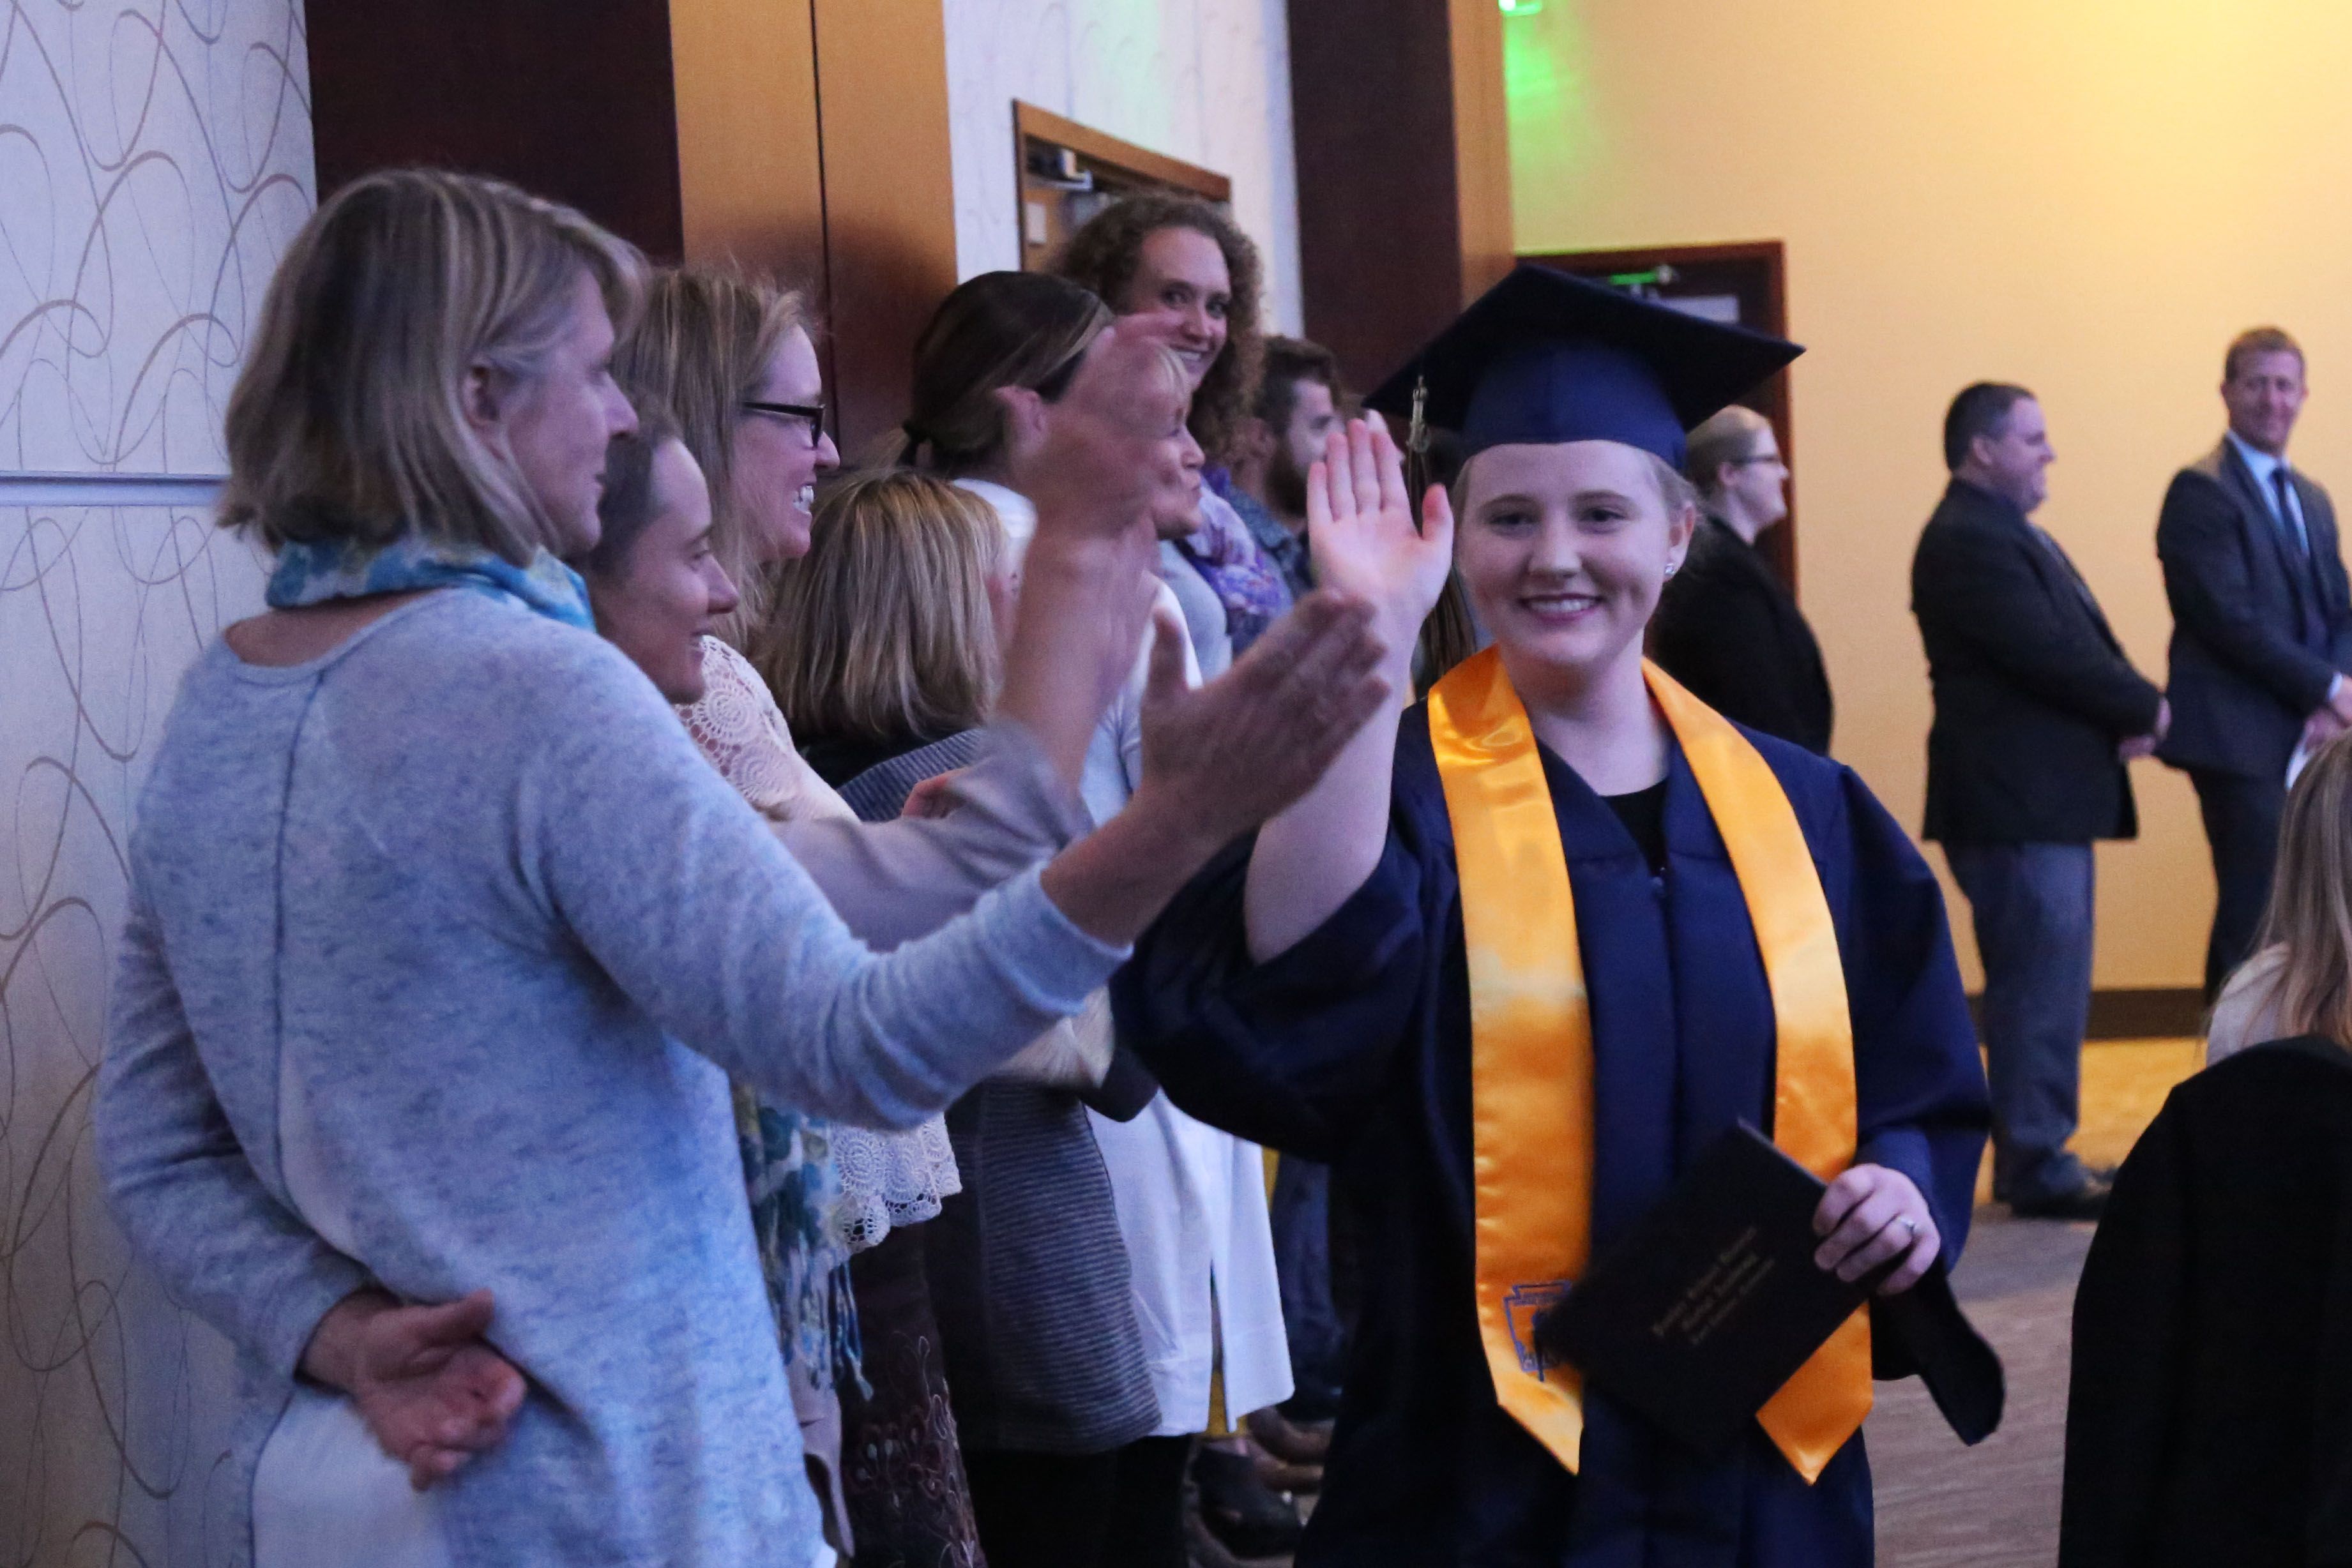 A graduate offers high fives down a reception line.